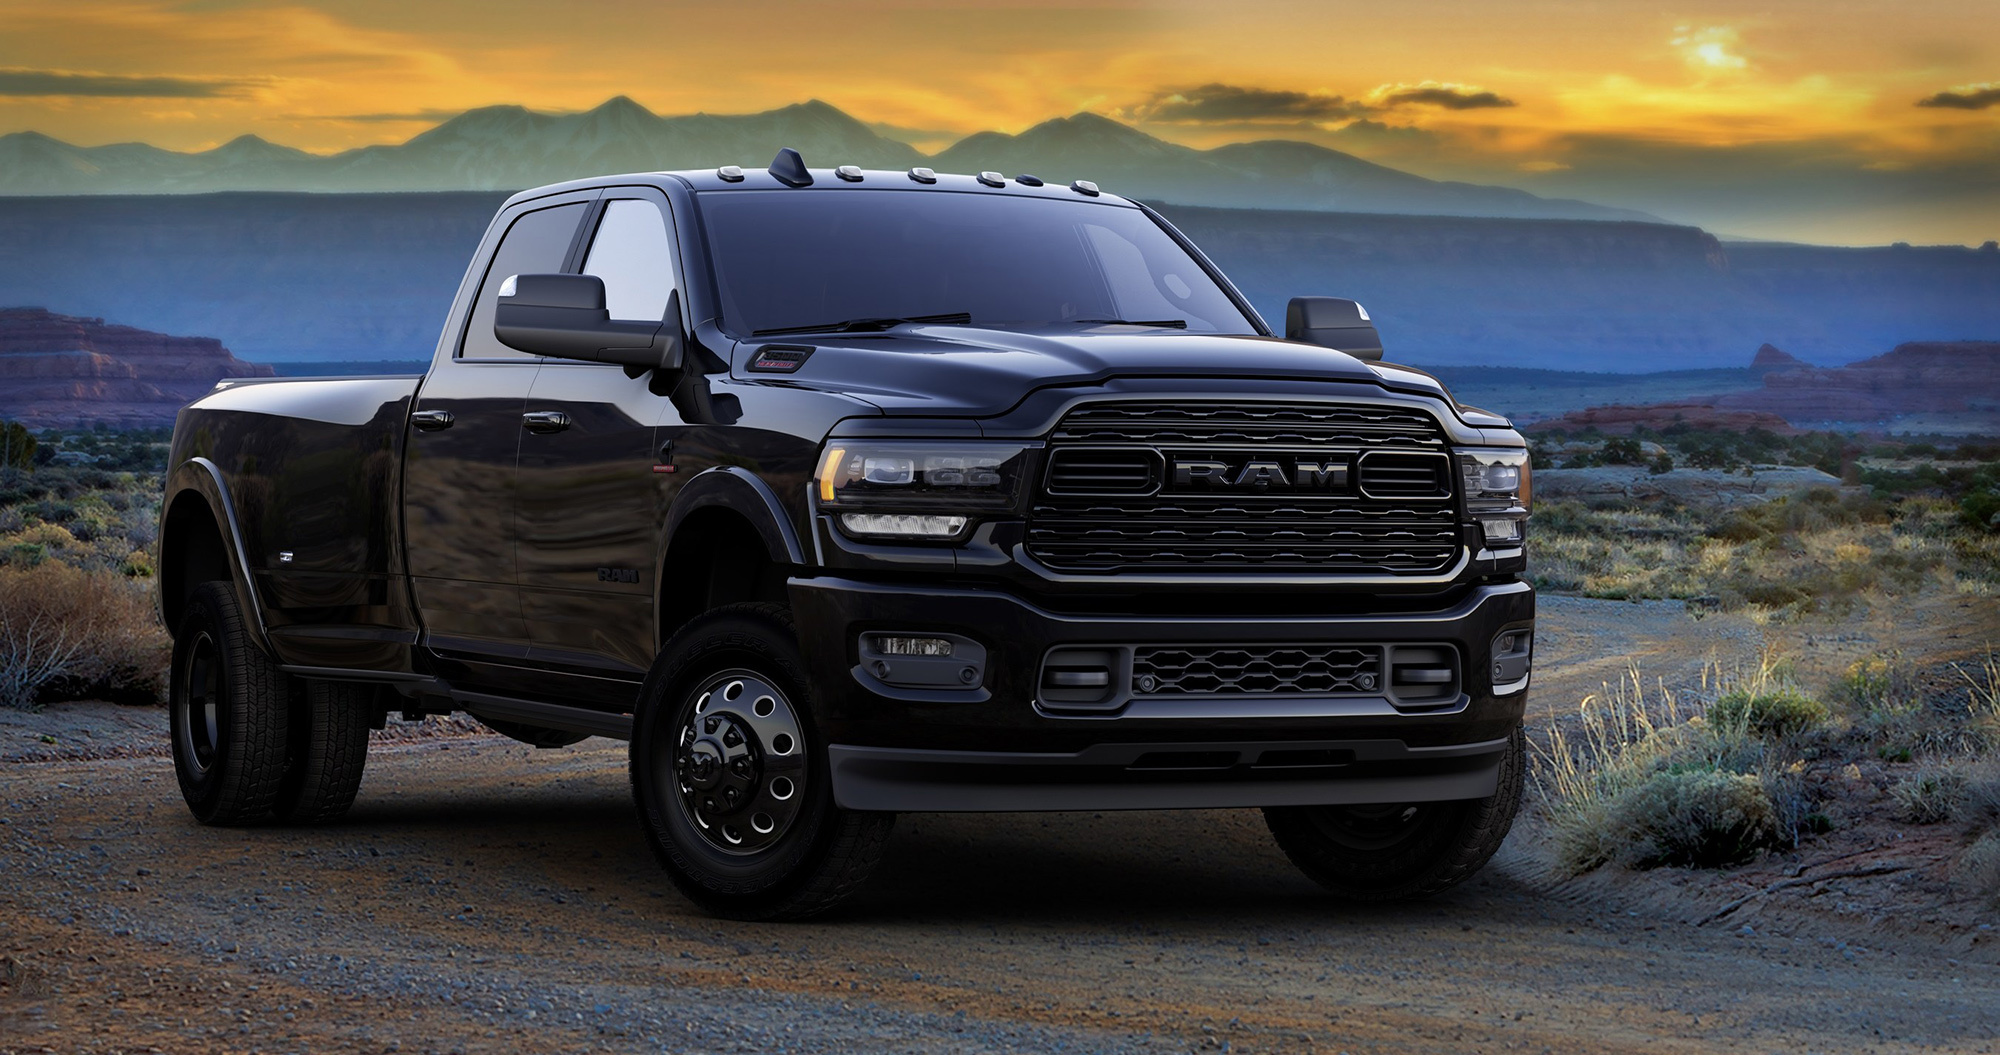 Ram Heavy Duty Black Edition - чёрная лошадка